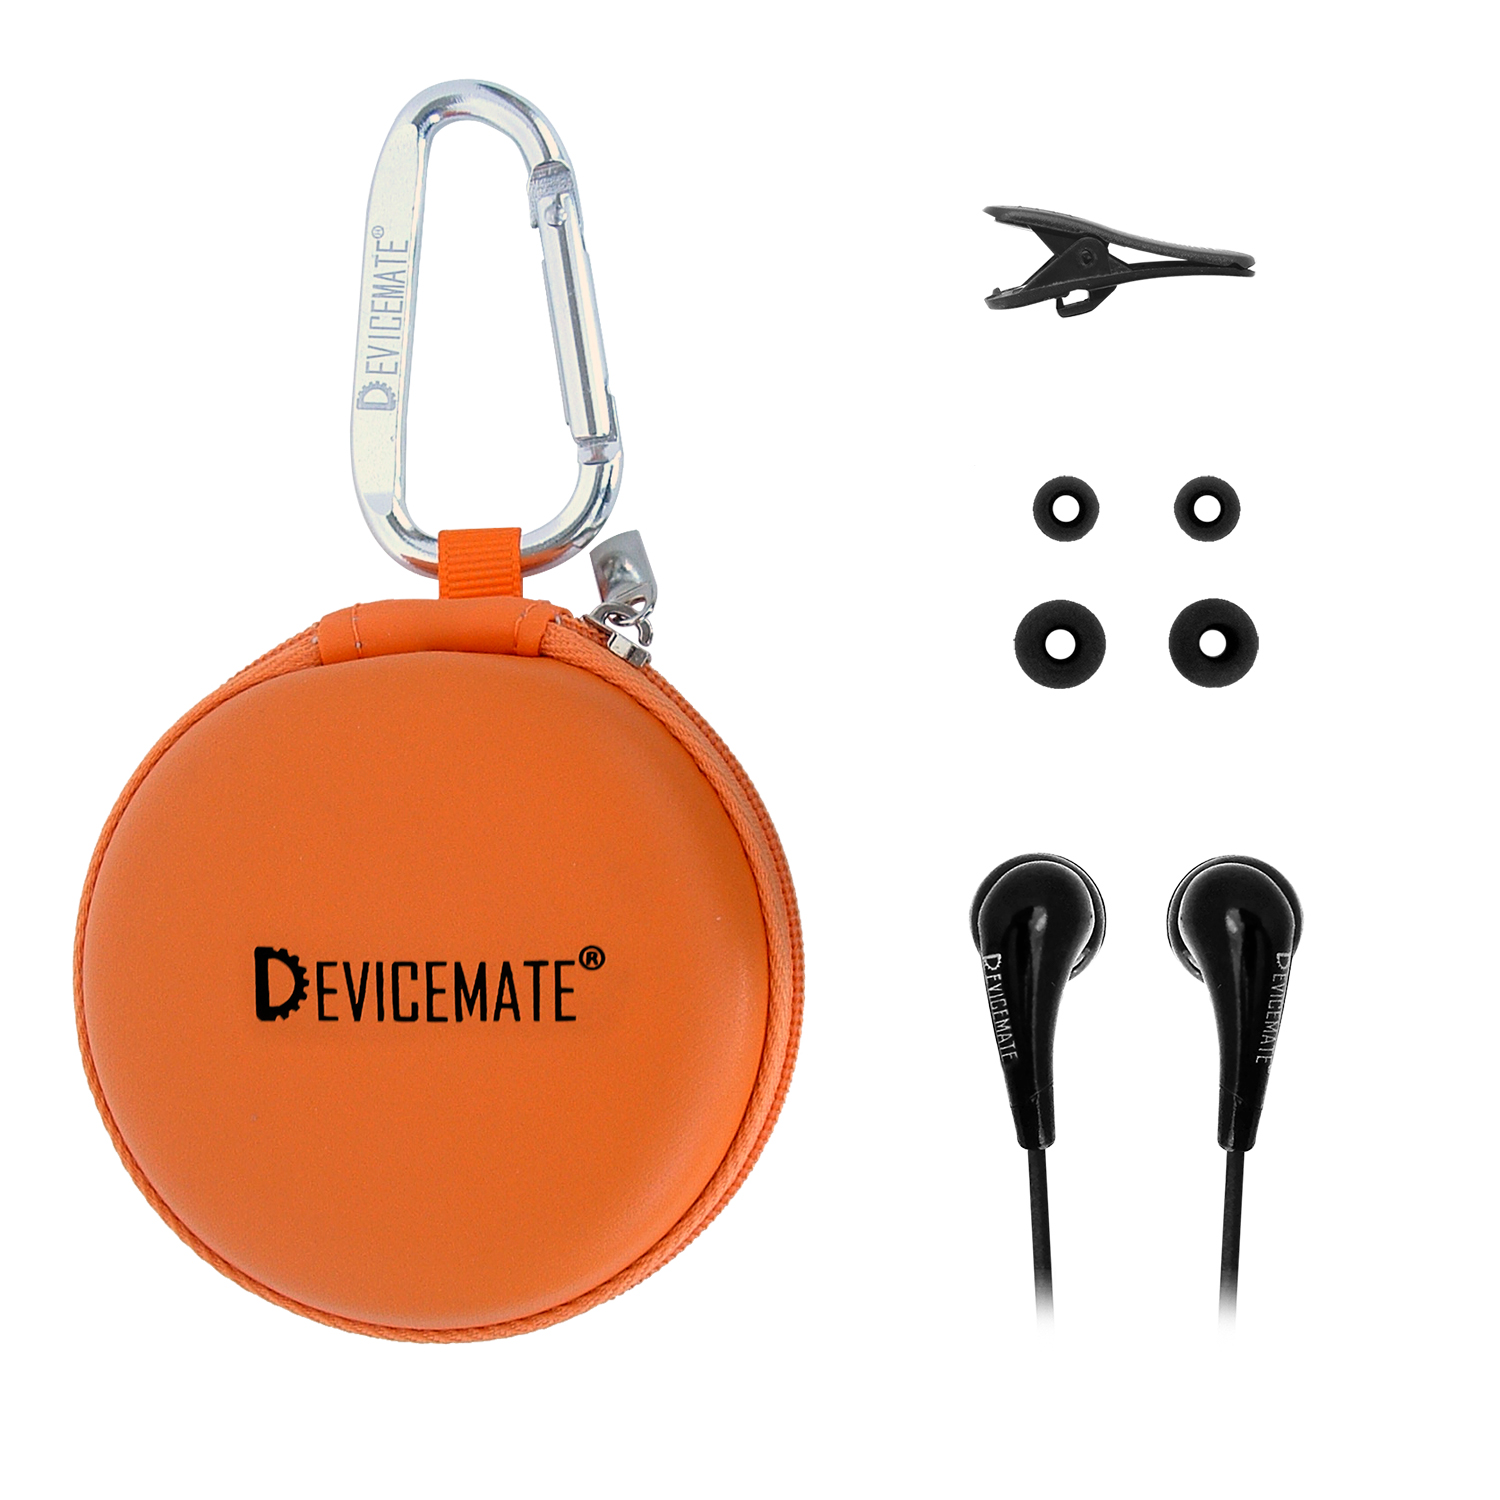 Devicemate SD 255-COR In-Ear Stereo Earphones [Orange] Case